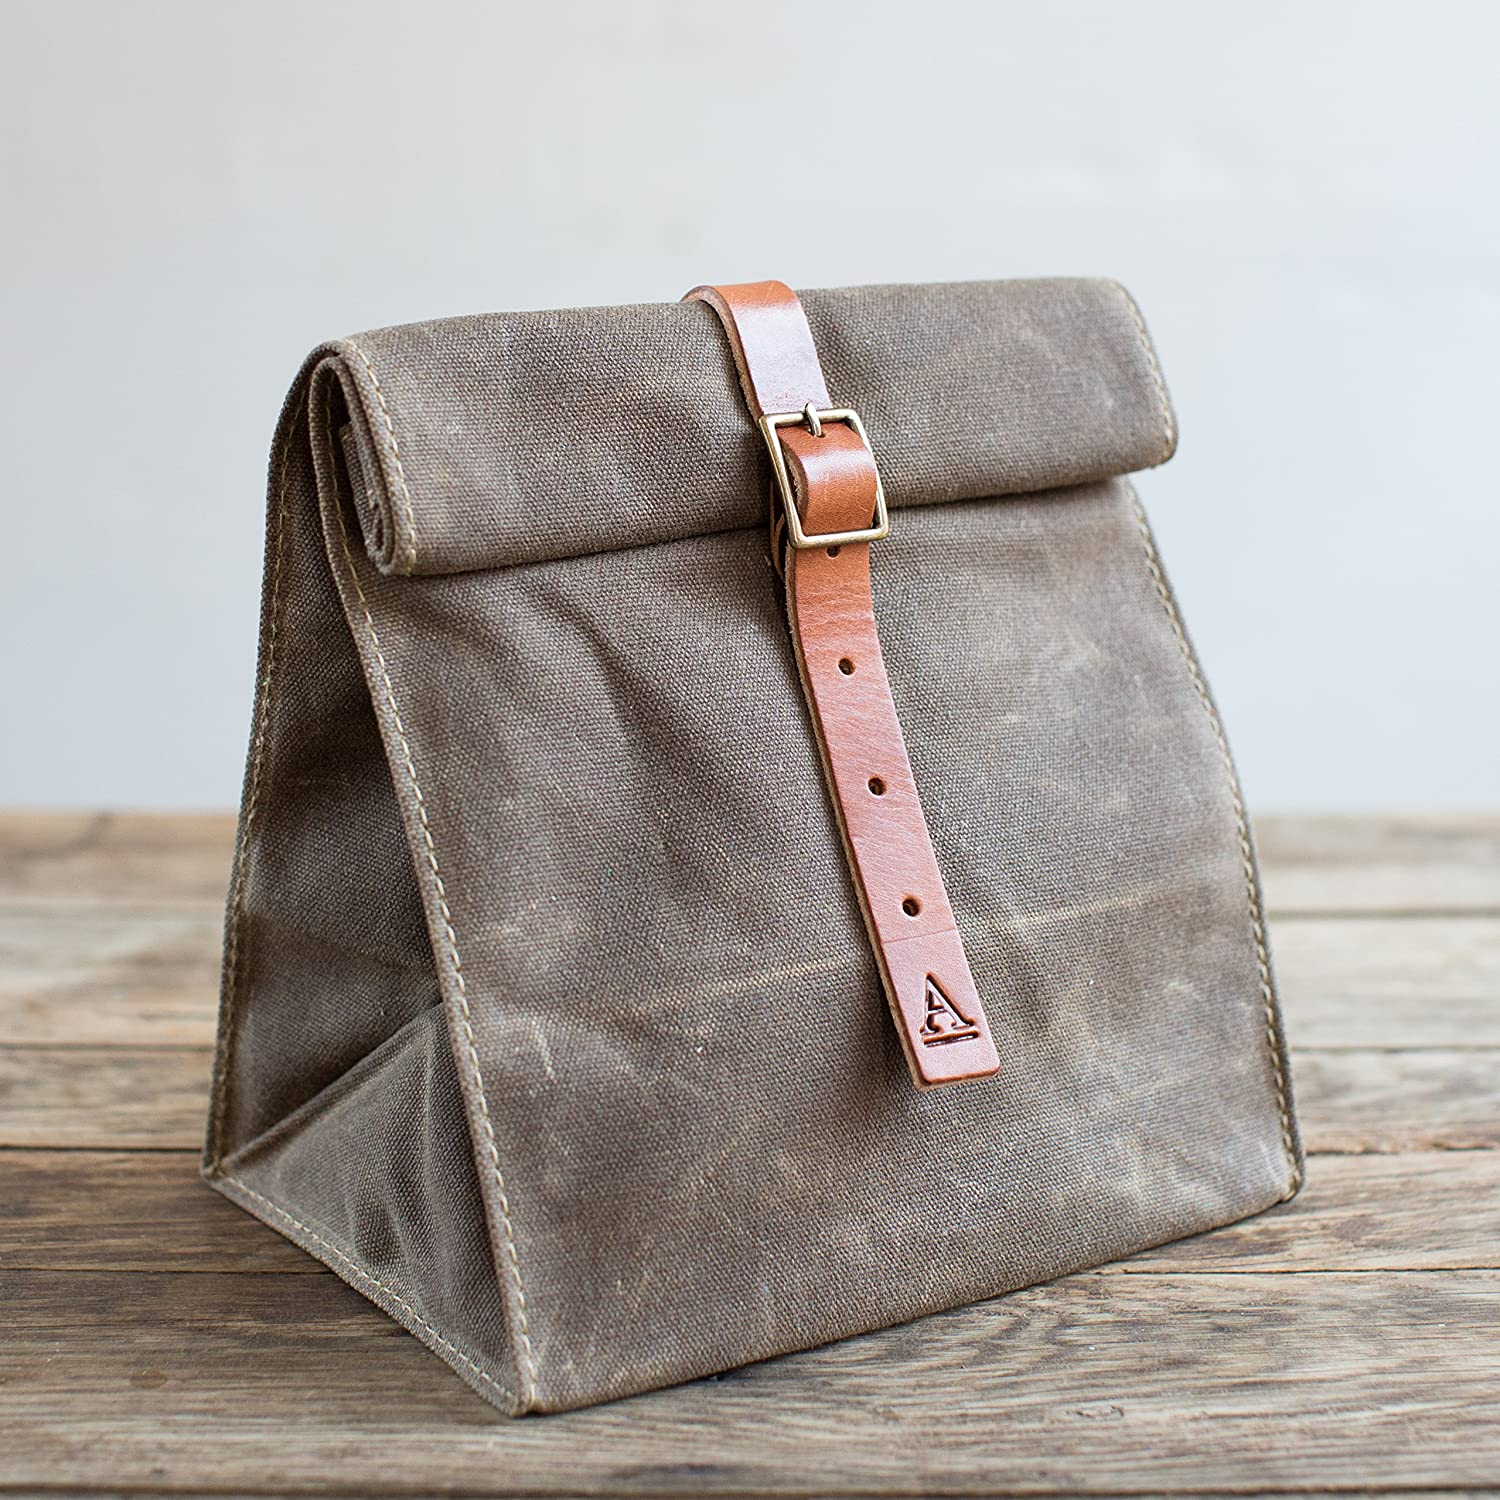 No.215B Waxed Canvas Khaki Lunch Tote - Made in USA